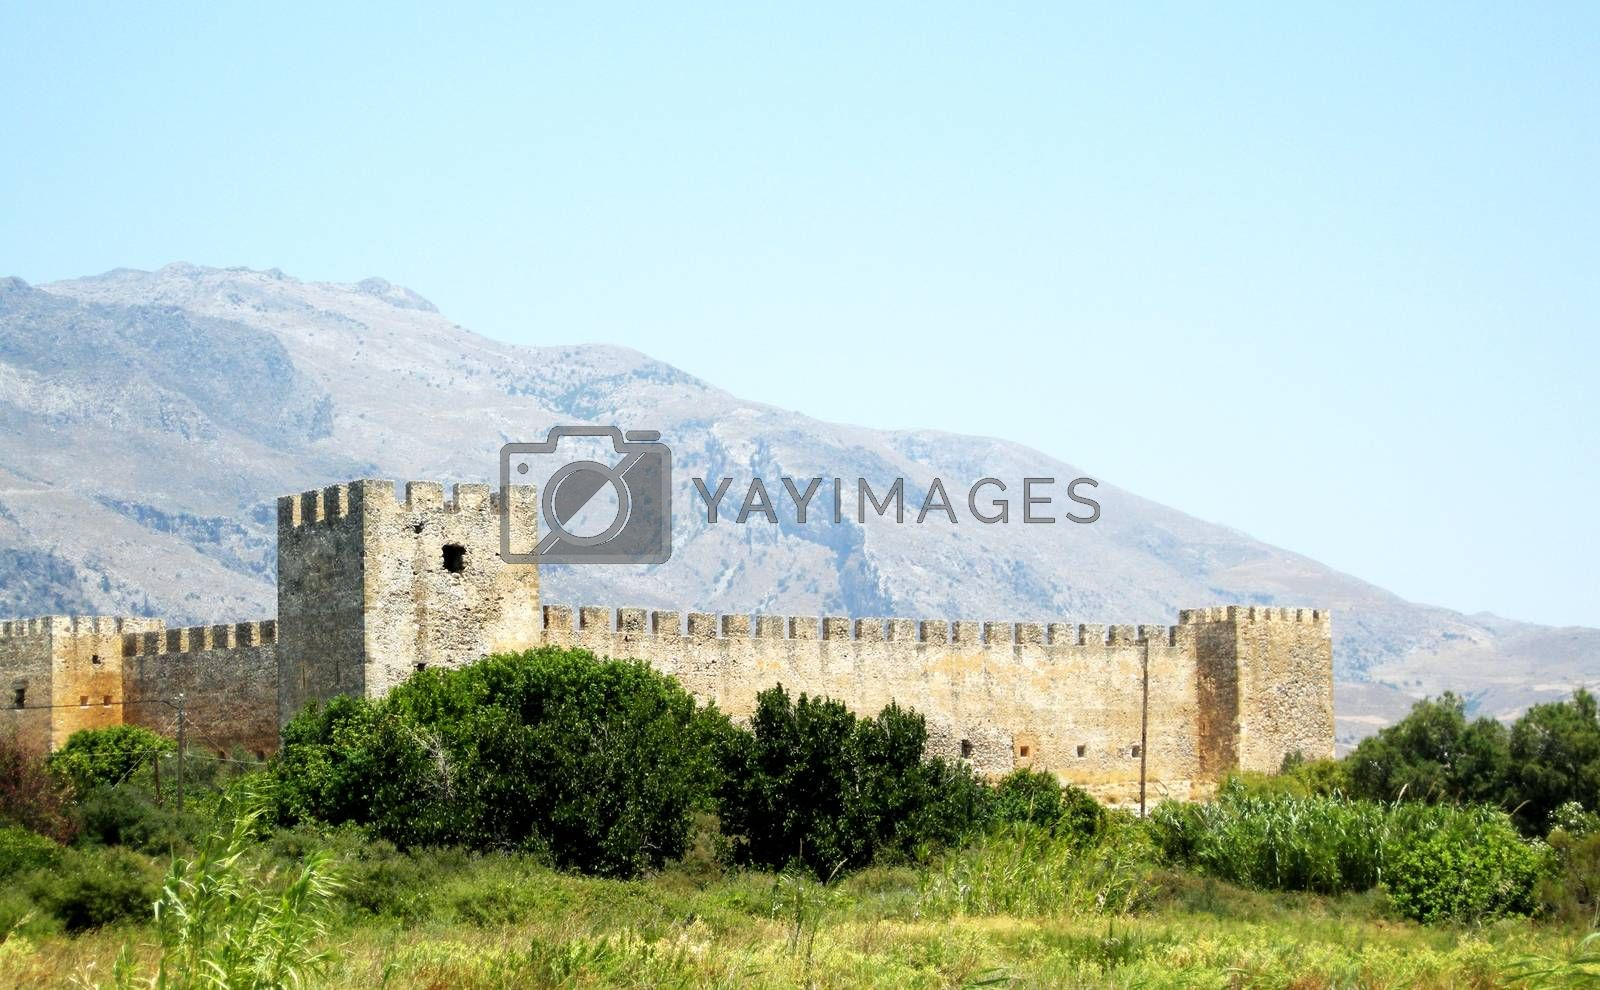 A distant view of the french fort (Fragokastello) in Crete island, Greece.  Picture taken on July 24, 2010.